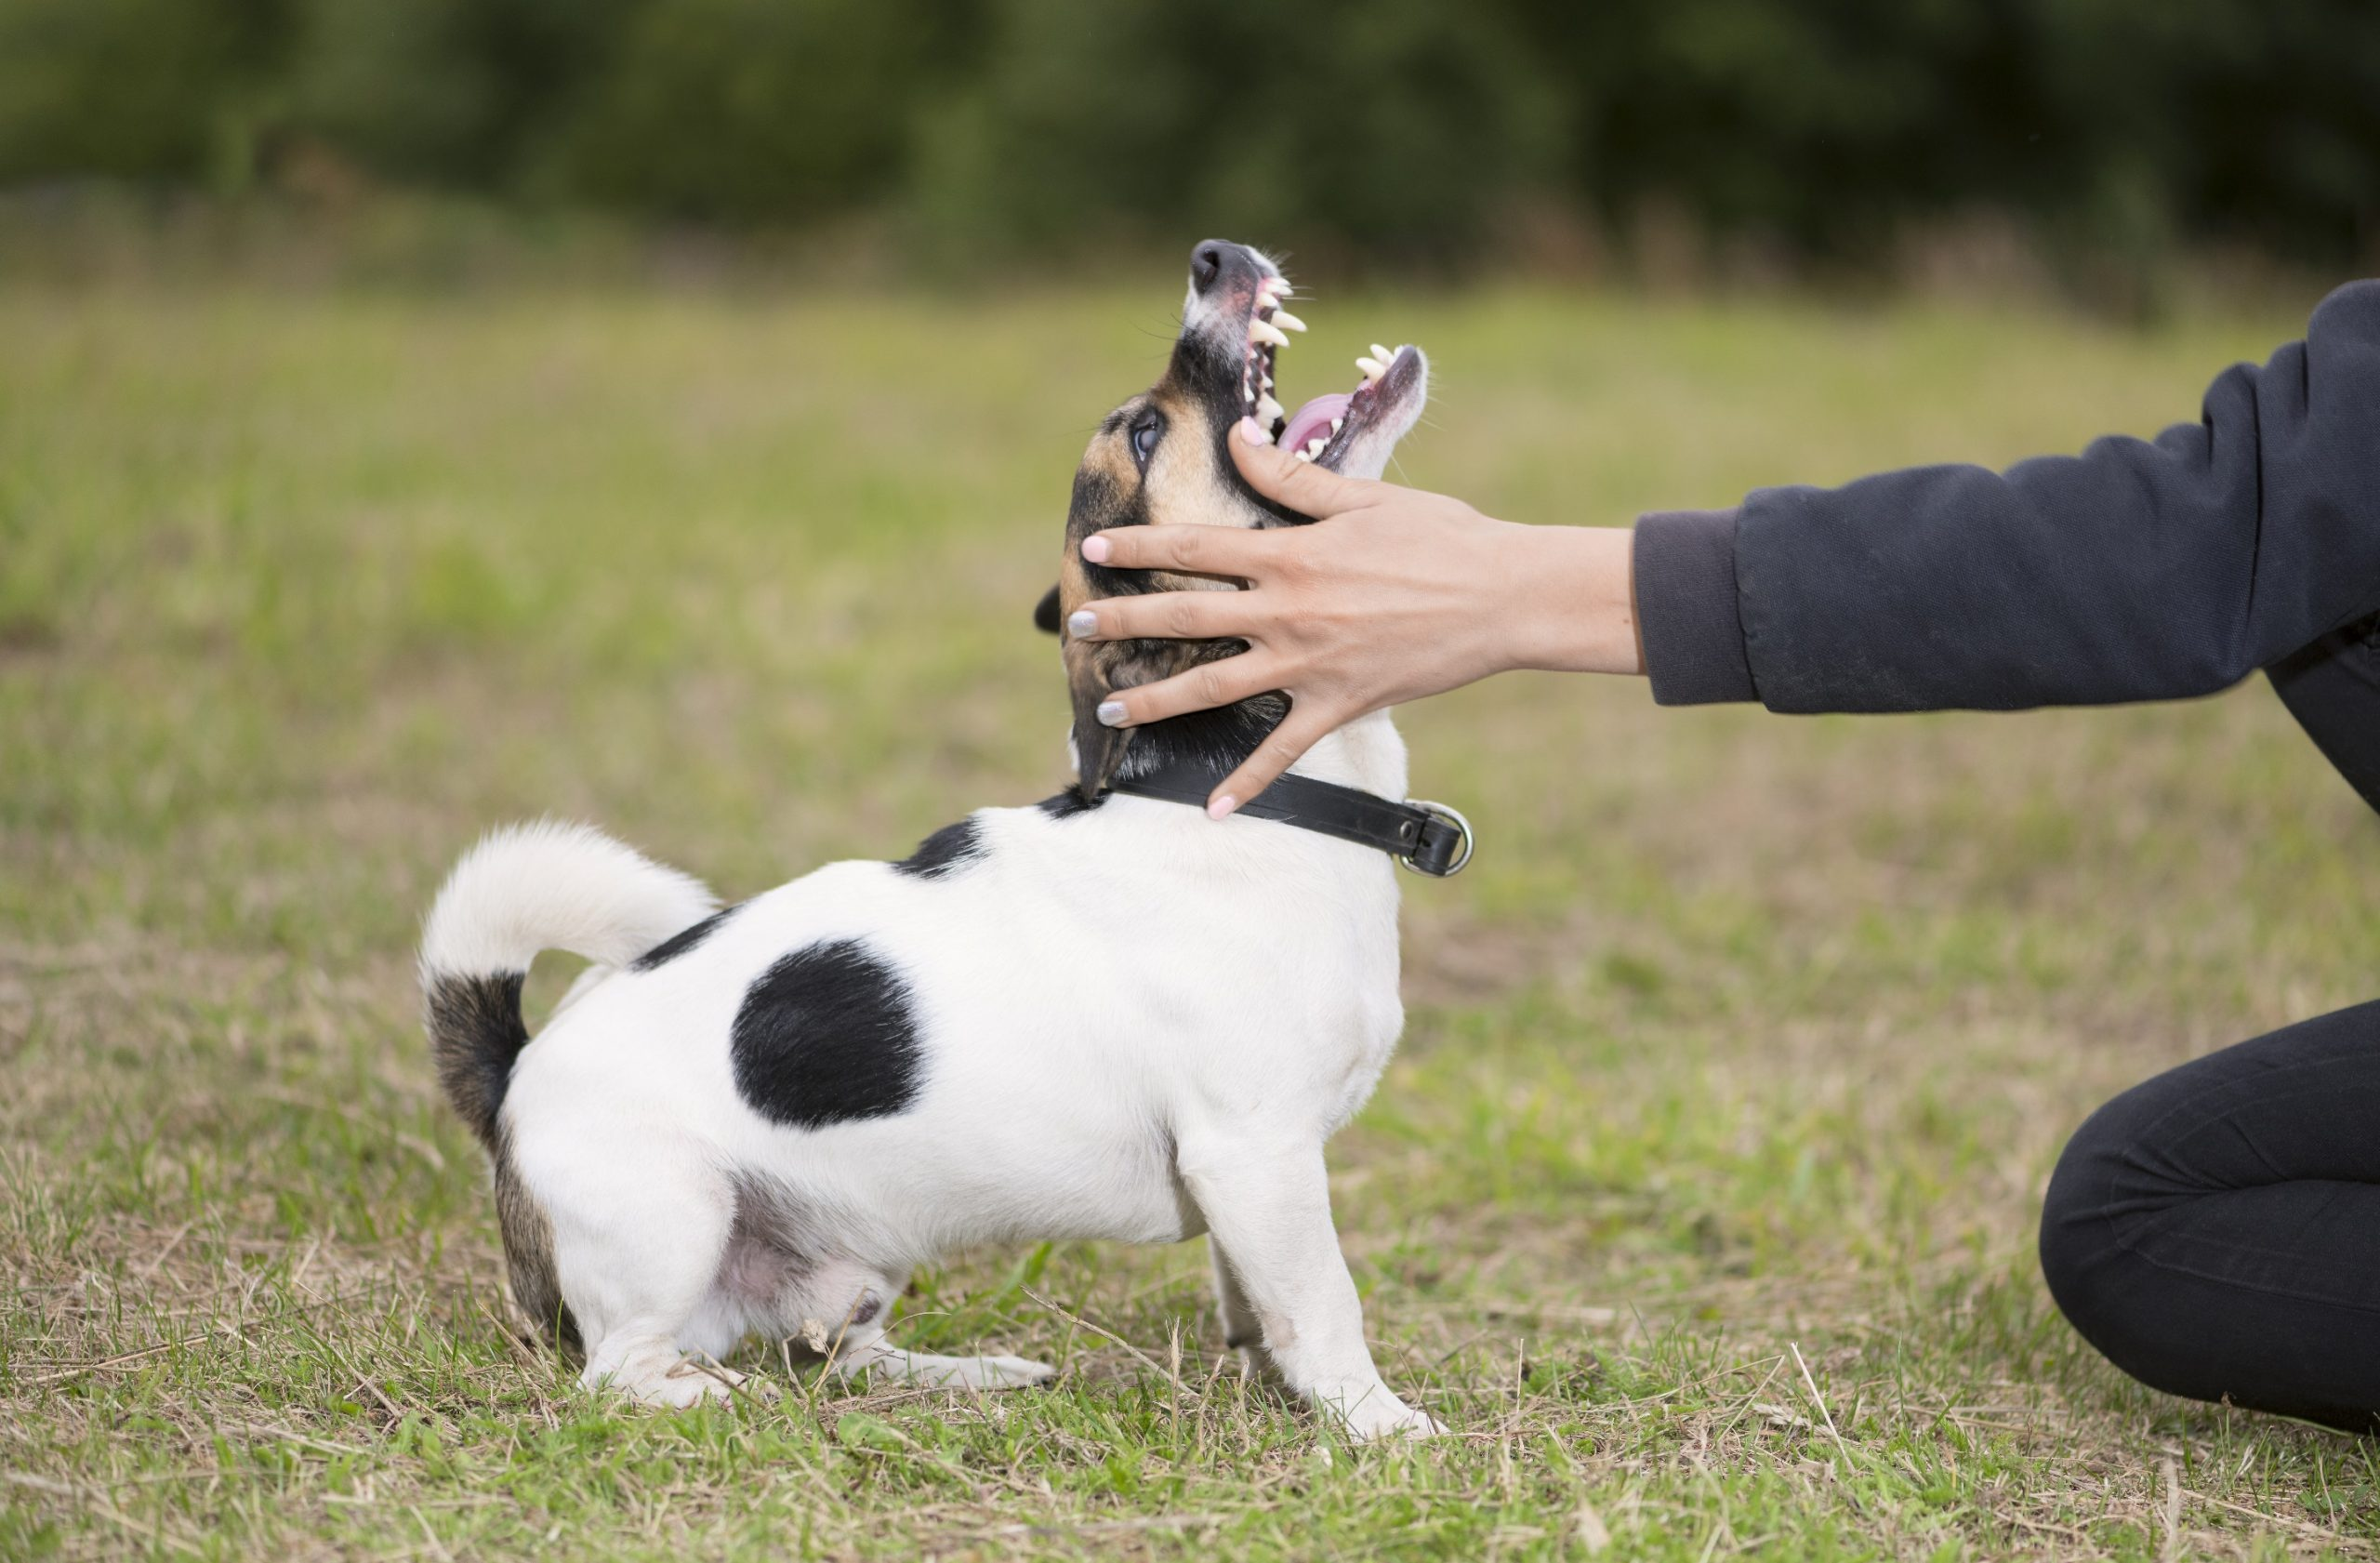 How To Train Your Dog: 5 Tips To Stop Aggressive Behavior 5